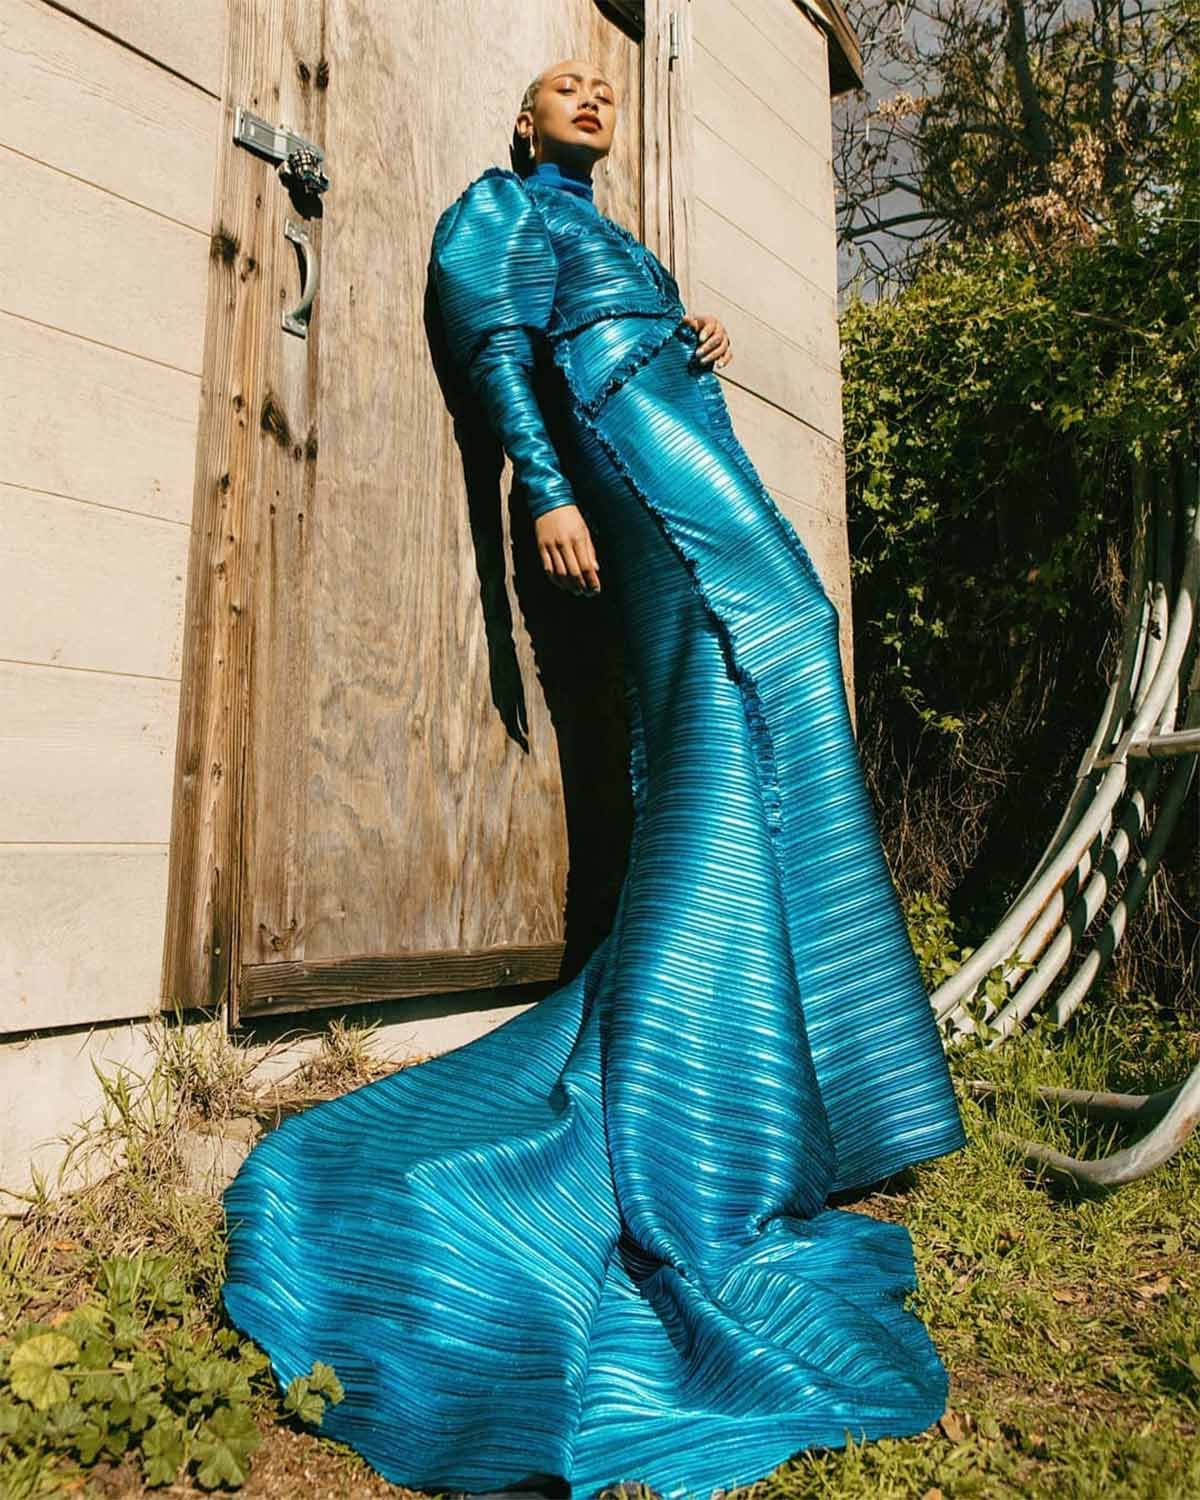 Tati Gabrielle Blue Dress